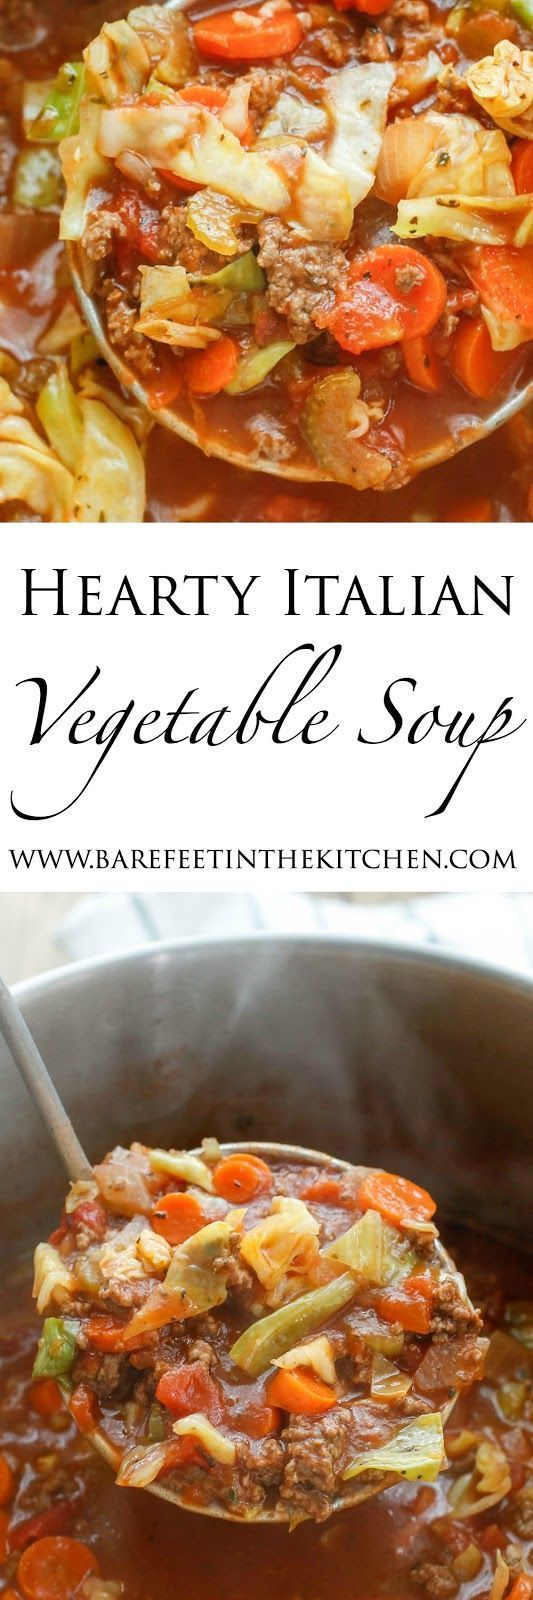 Hearty Italian Vegetable Beef Soup